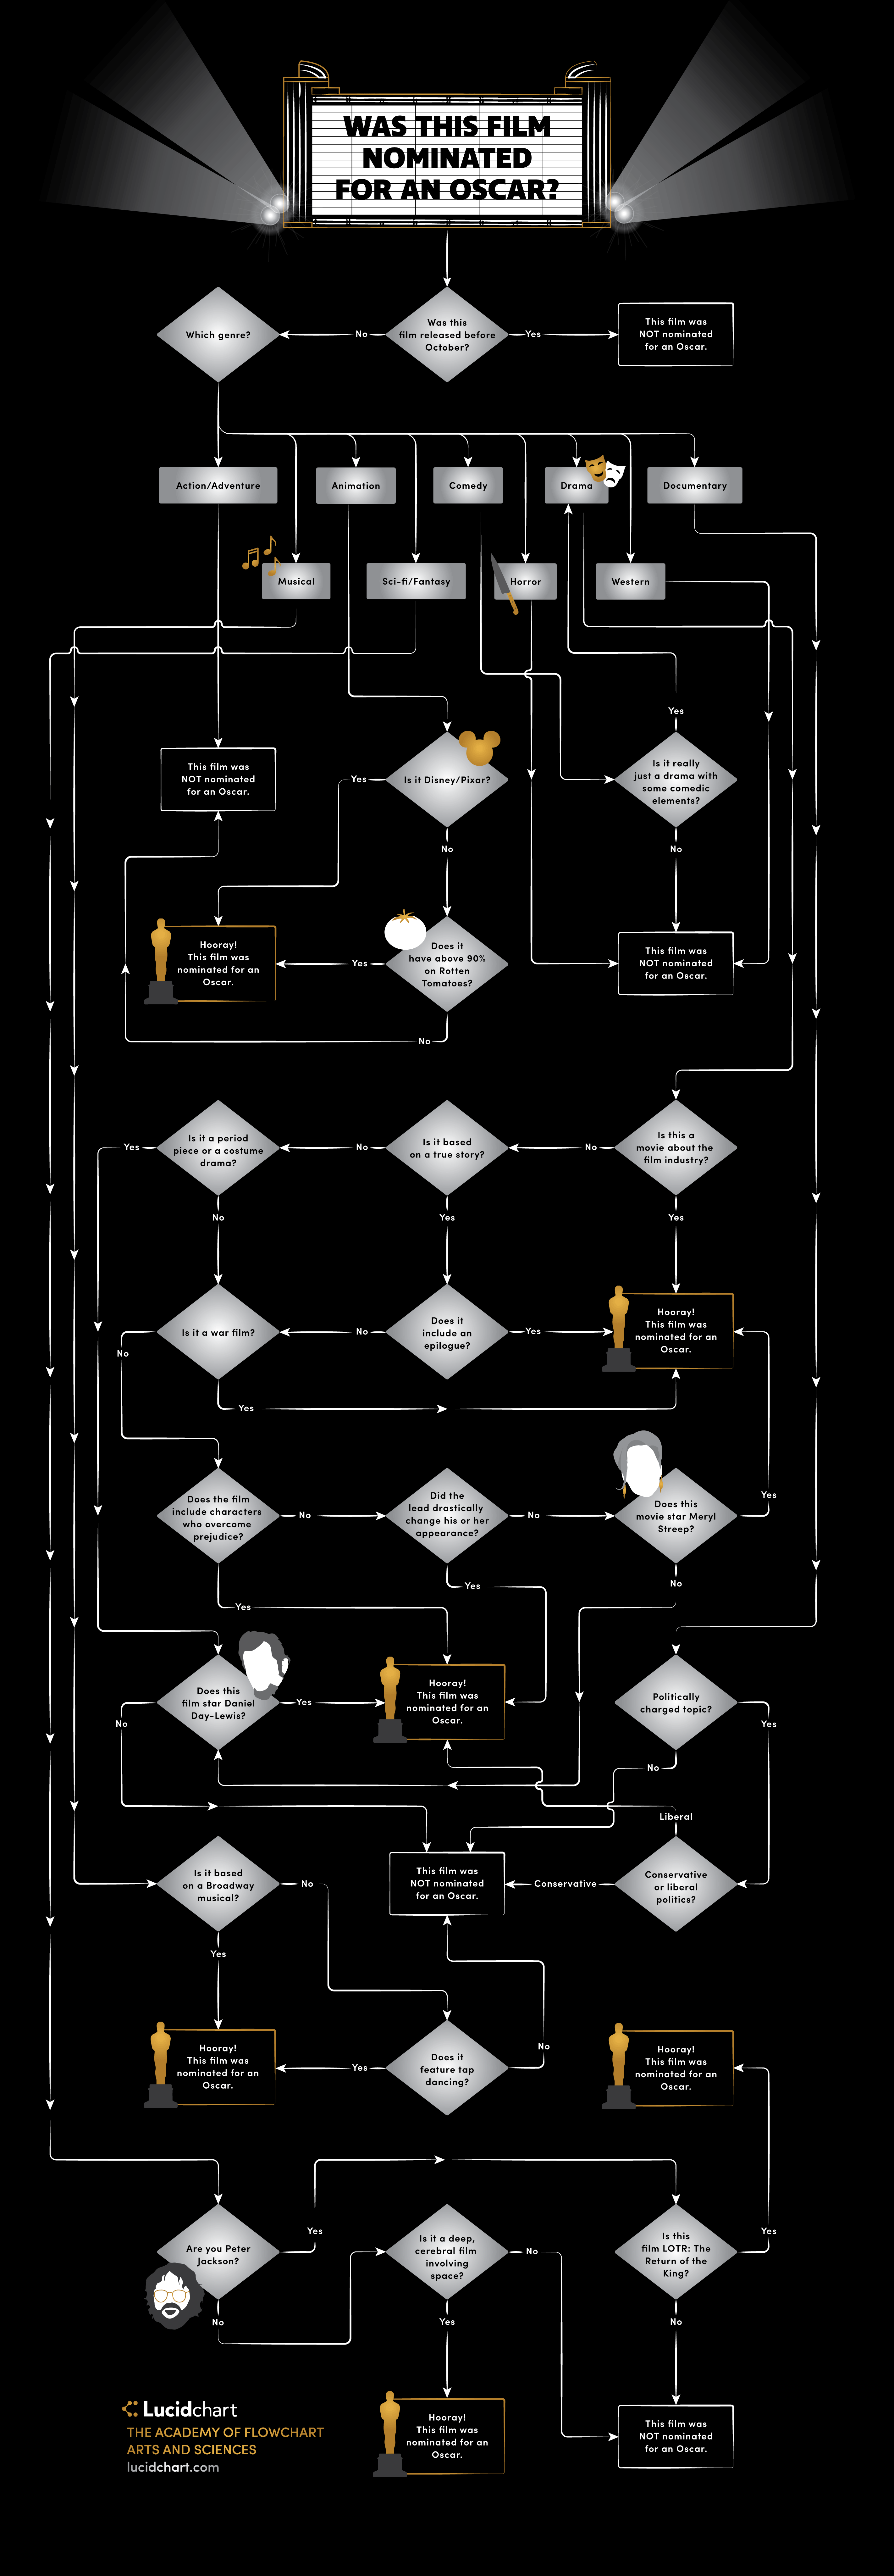 Was This Film Nominated for an Oscar? [Flowchart]